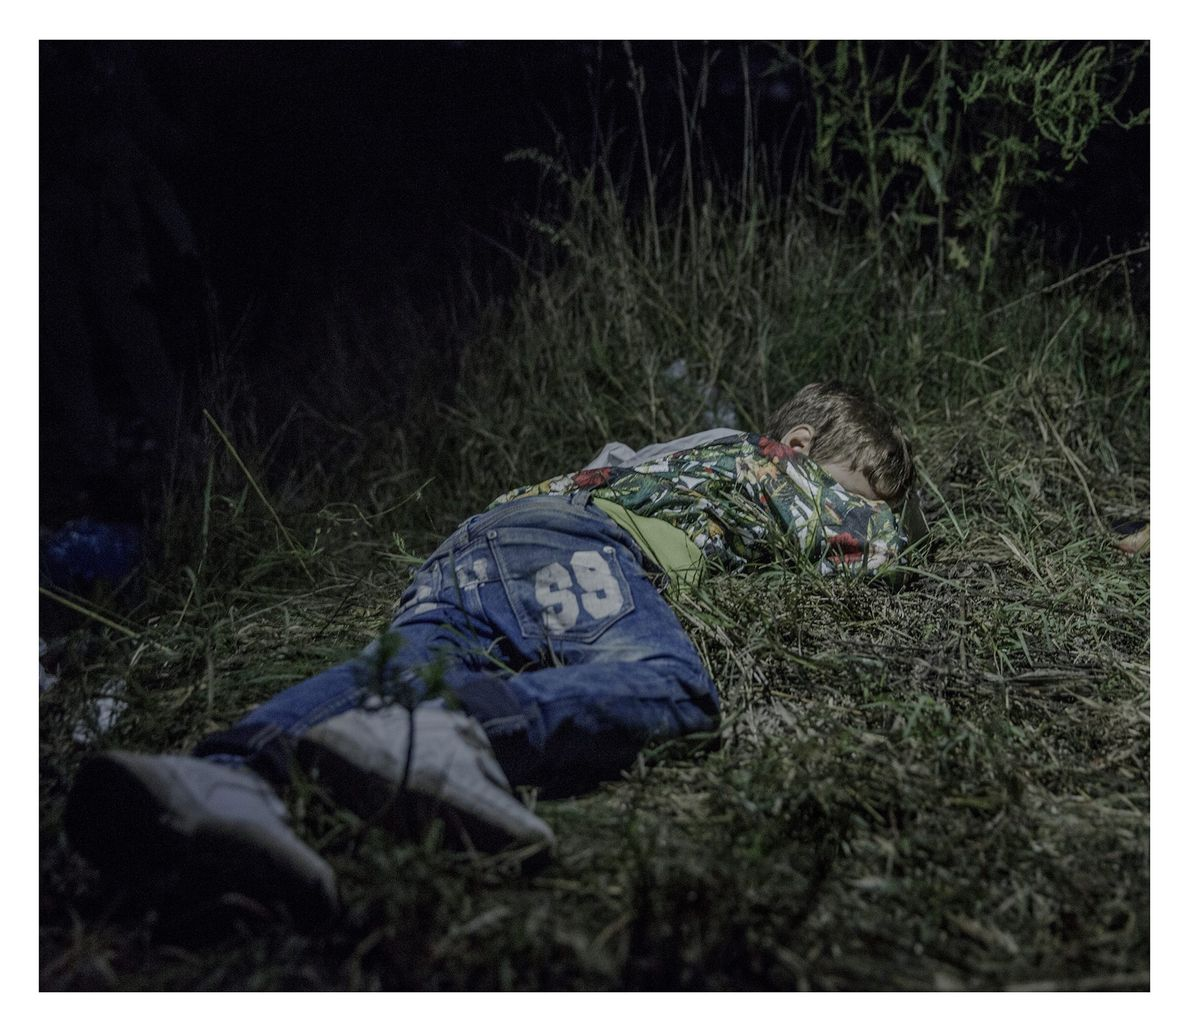 While the adults make plans to evade the authorities in Hungary, Ahmed, 6, sleeps in the ...